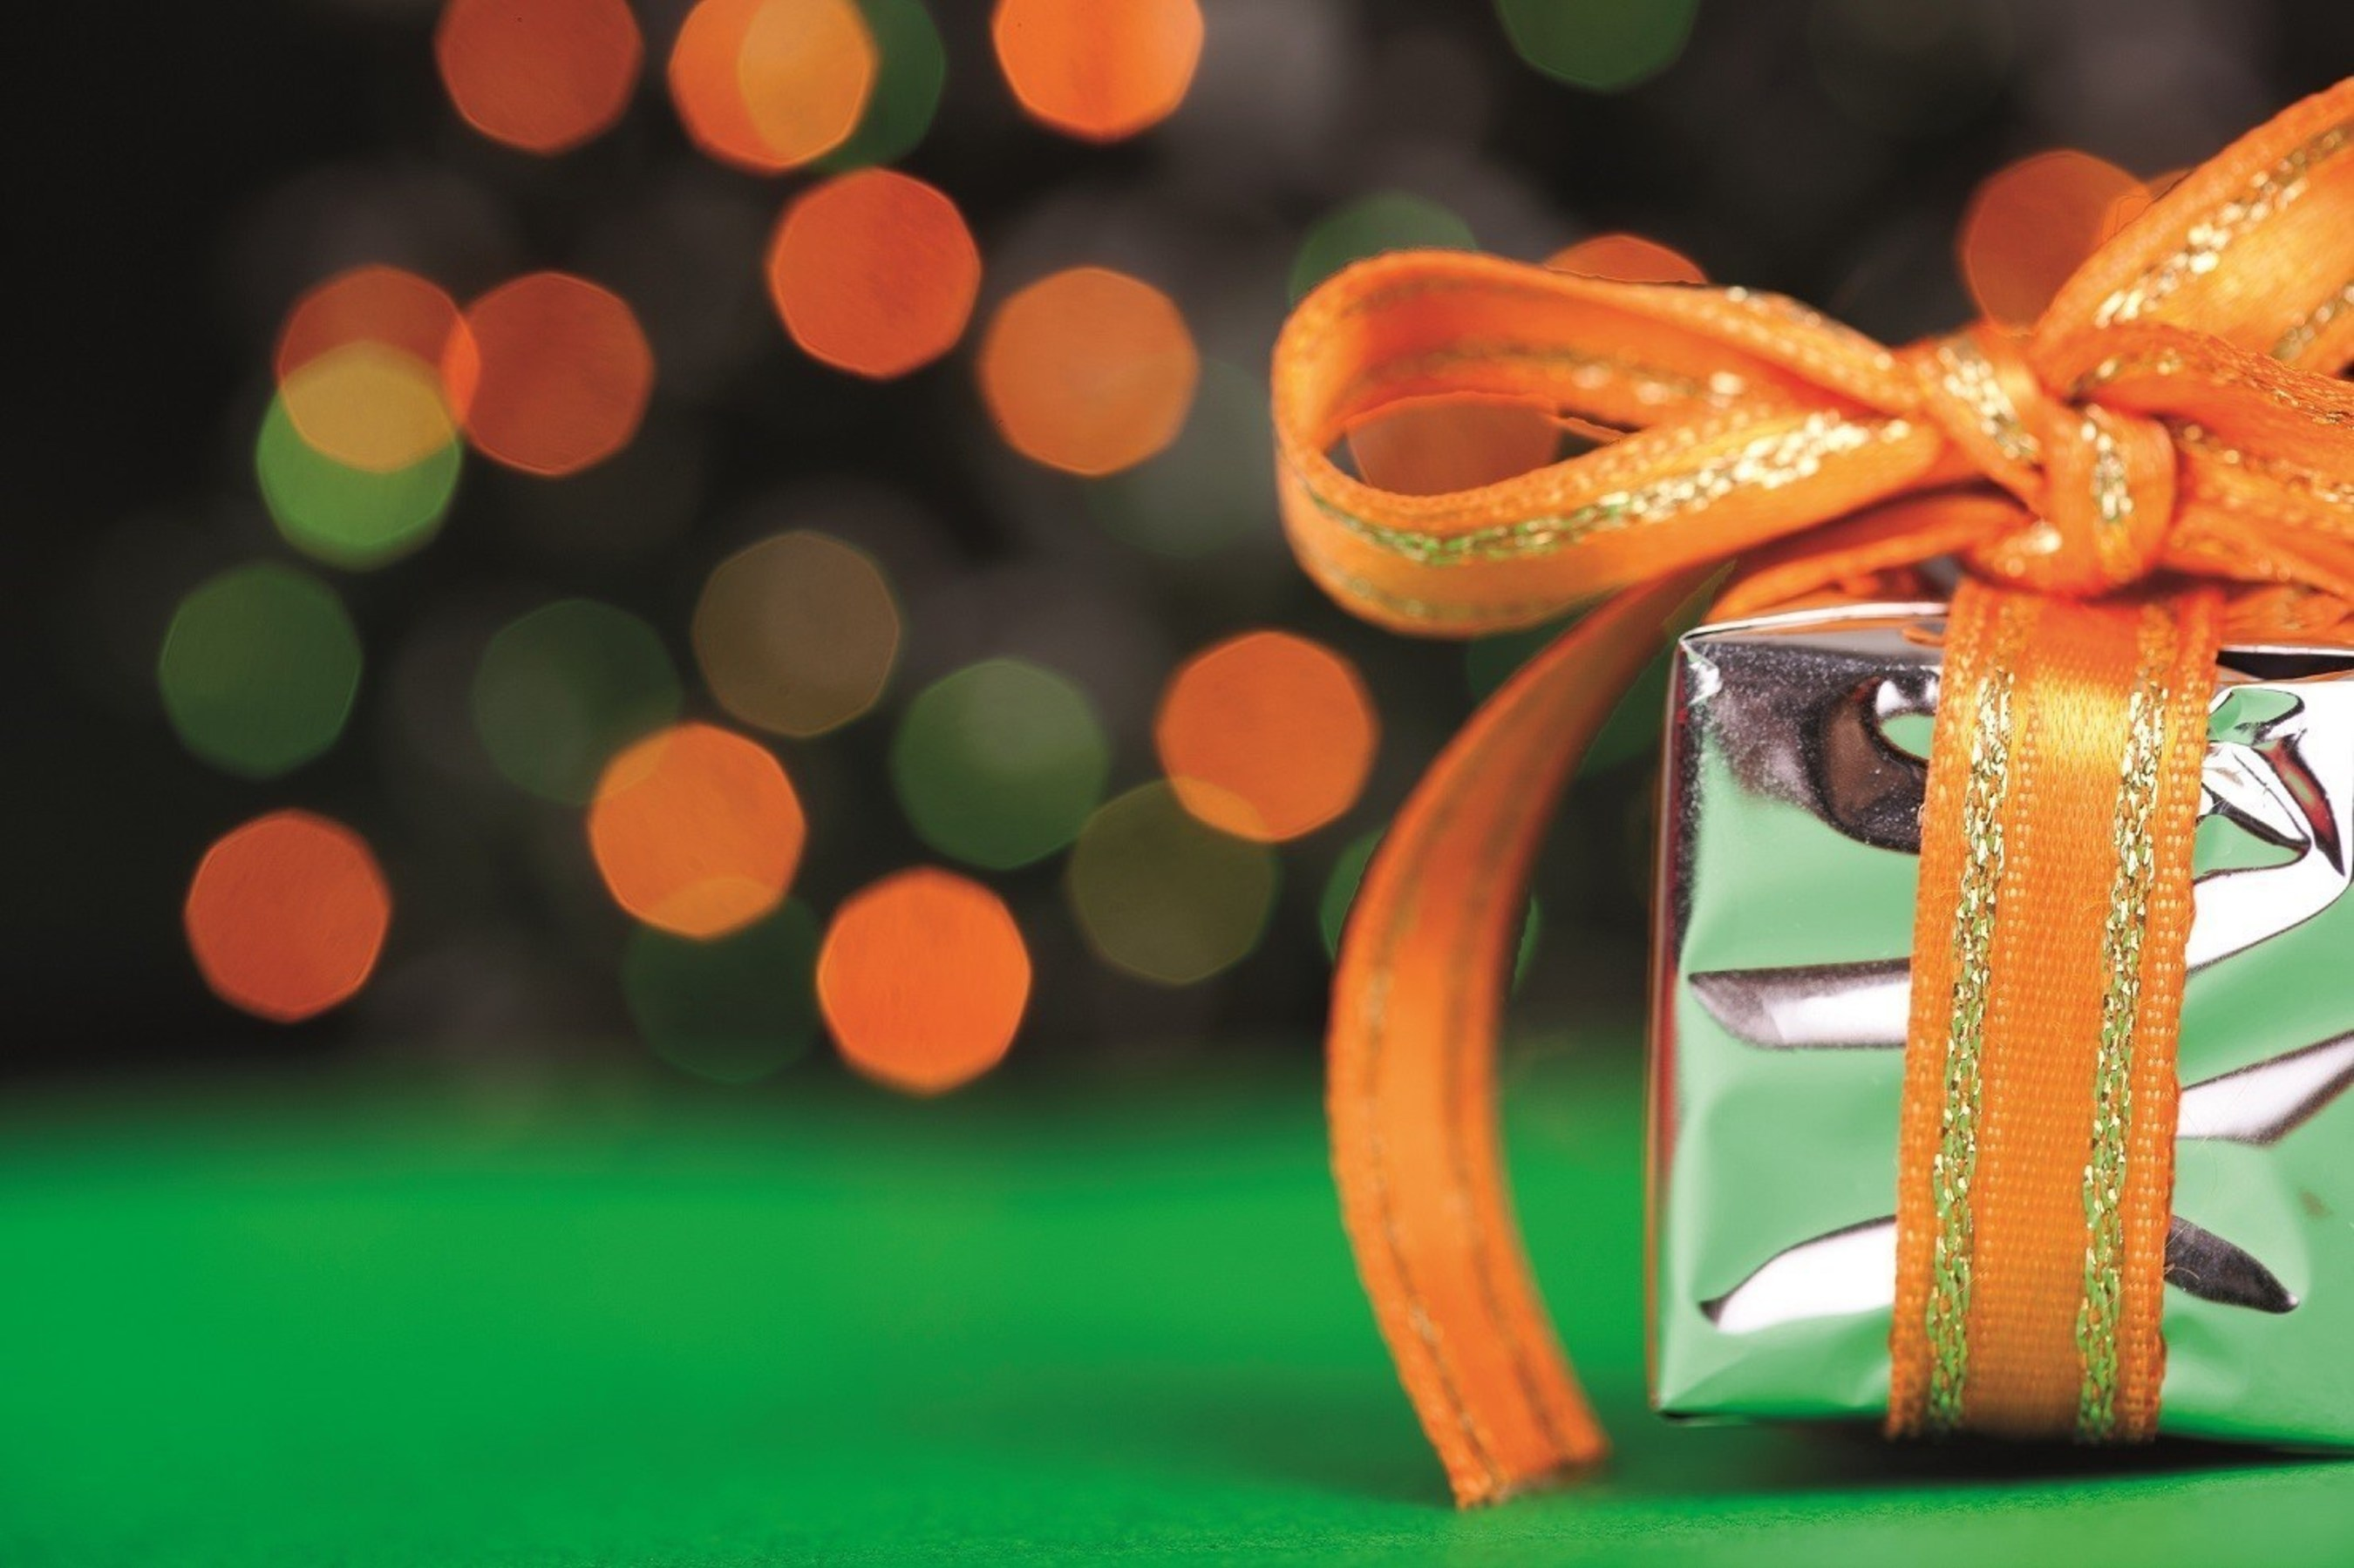 Marriott hotels across the U.S. and Canada are inviting guests to enjoy the Our Holiday Gift to You Package. Reserve a stay by Dec. 30, 2015, for any date through Jan. 18, 2016, and enjoy a credit ranging from $20 to $50. For reservations, call 1-800-228-9290 and use promotional code 22H.